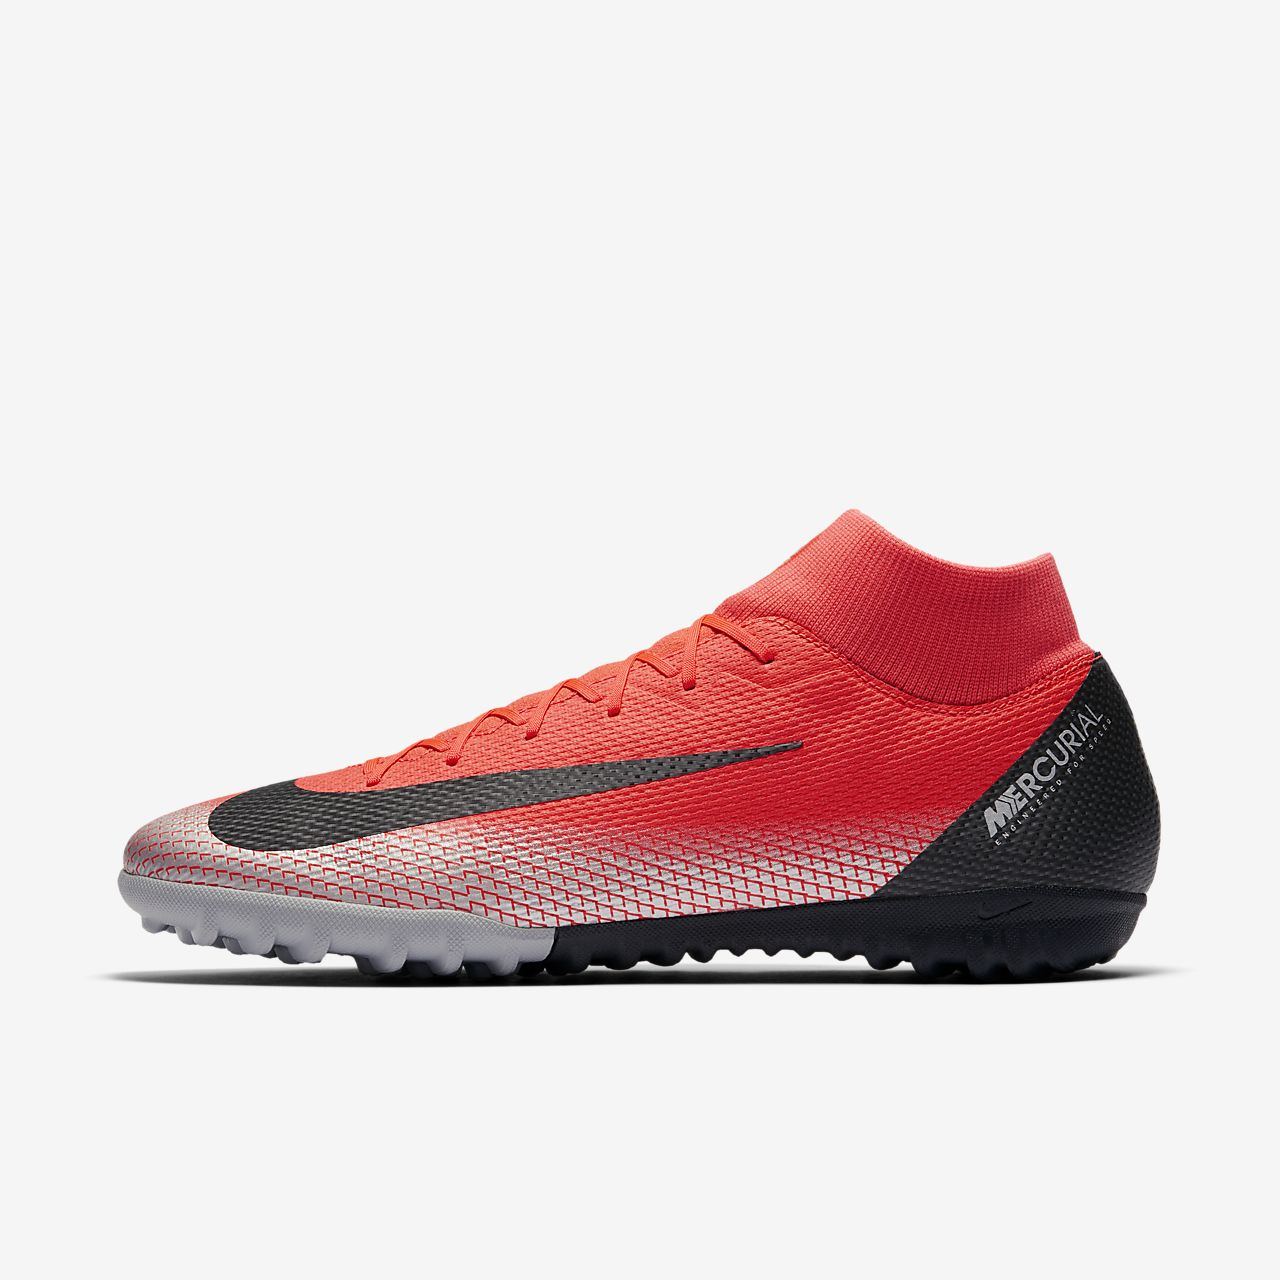 hot sale online 64dd6 7cf79 Chaussure de football à crampons pour terrain synthétique CR7 SuperflyX 6  Academy